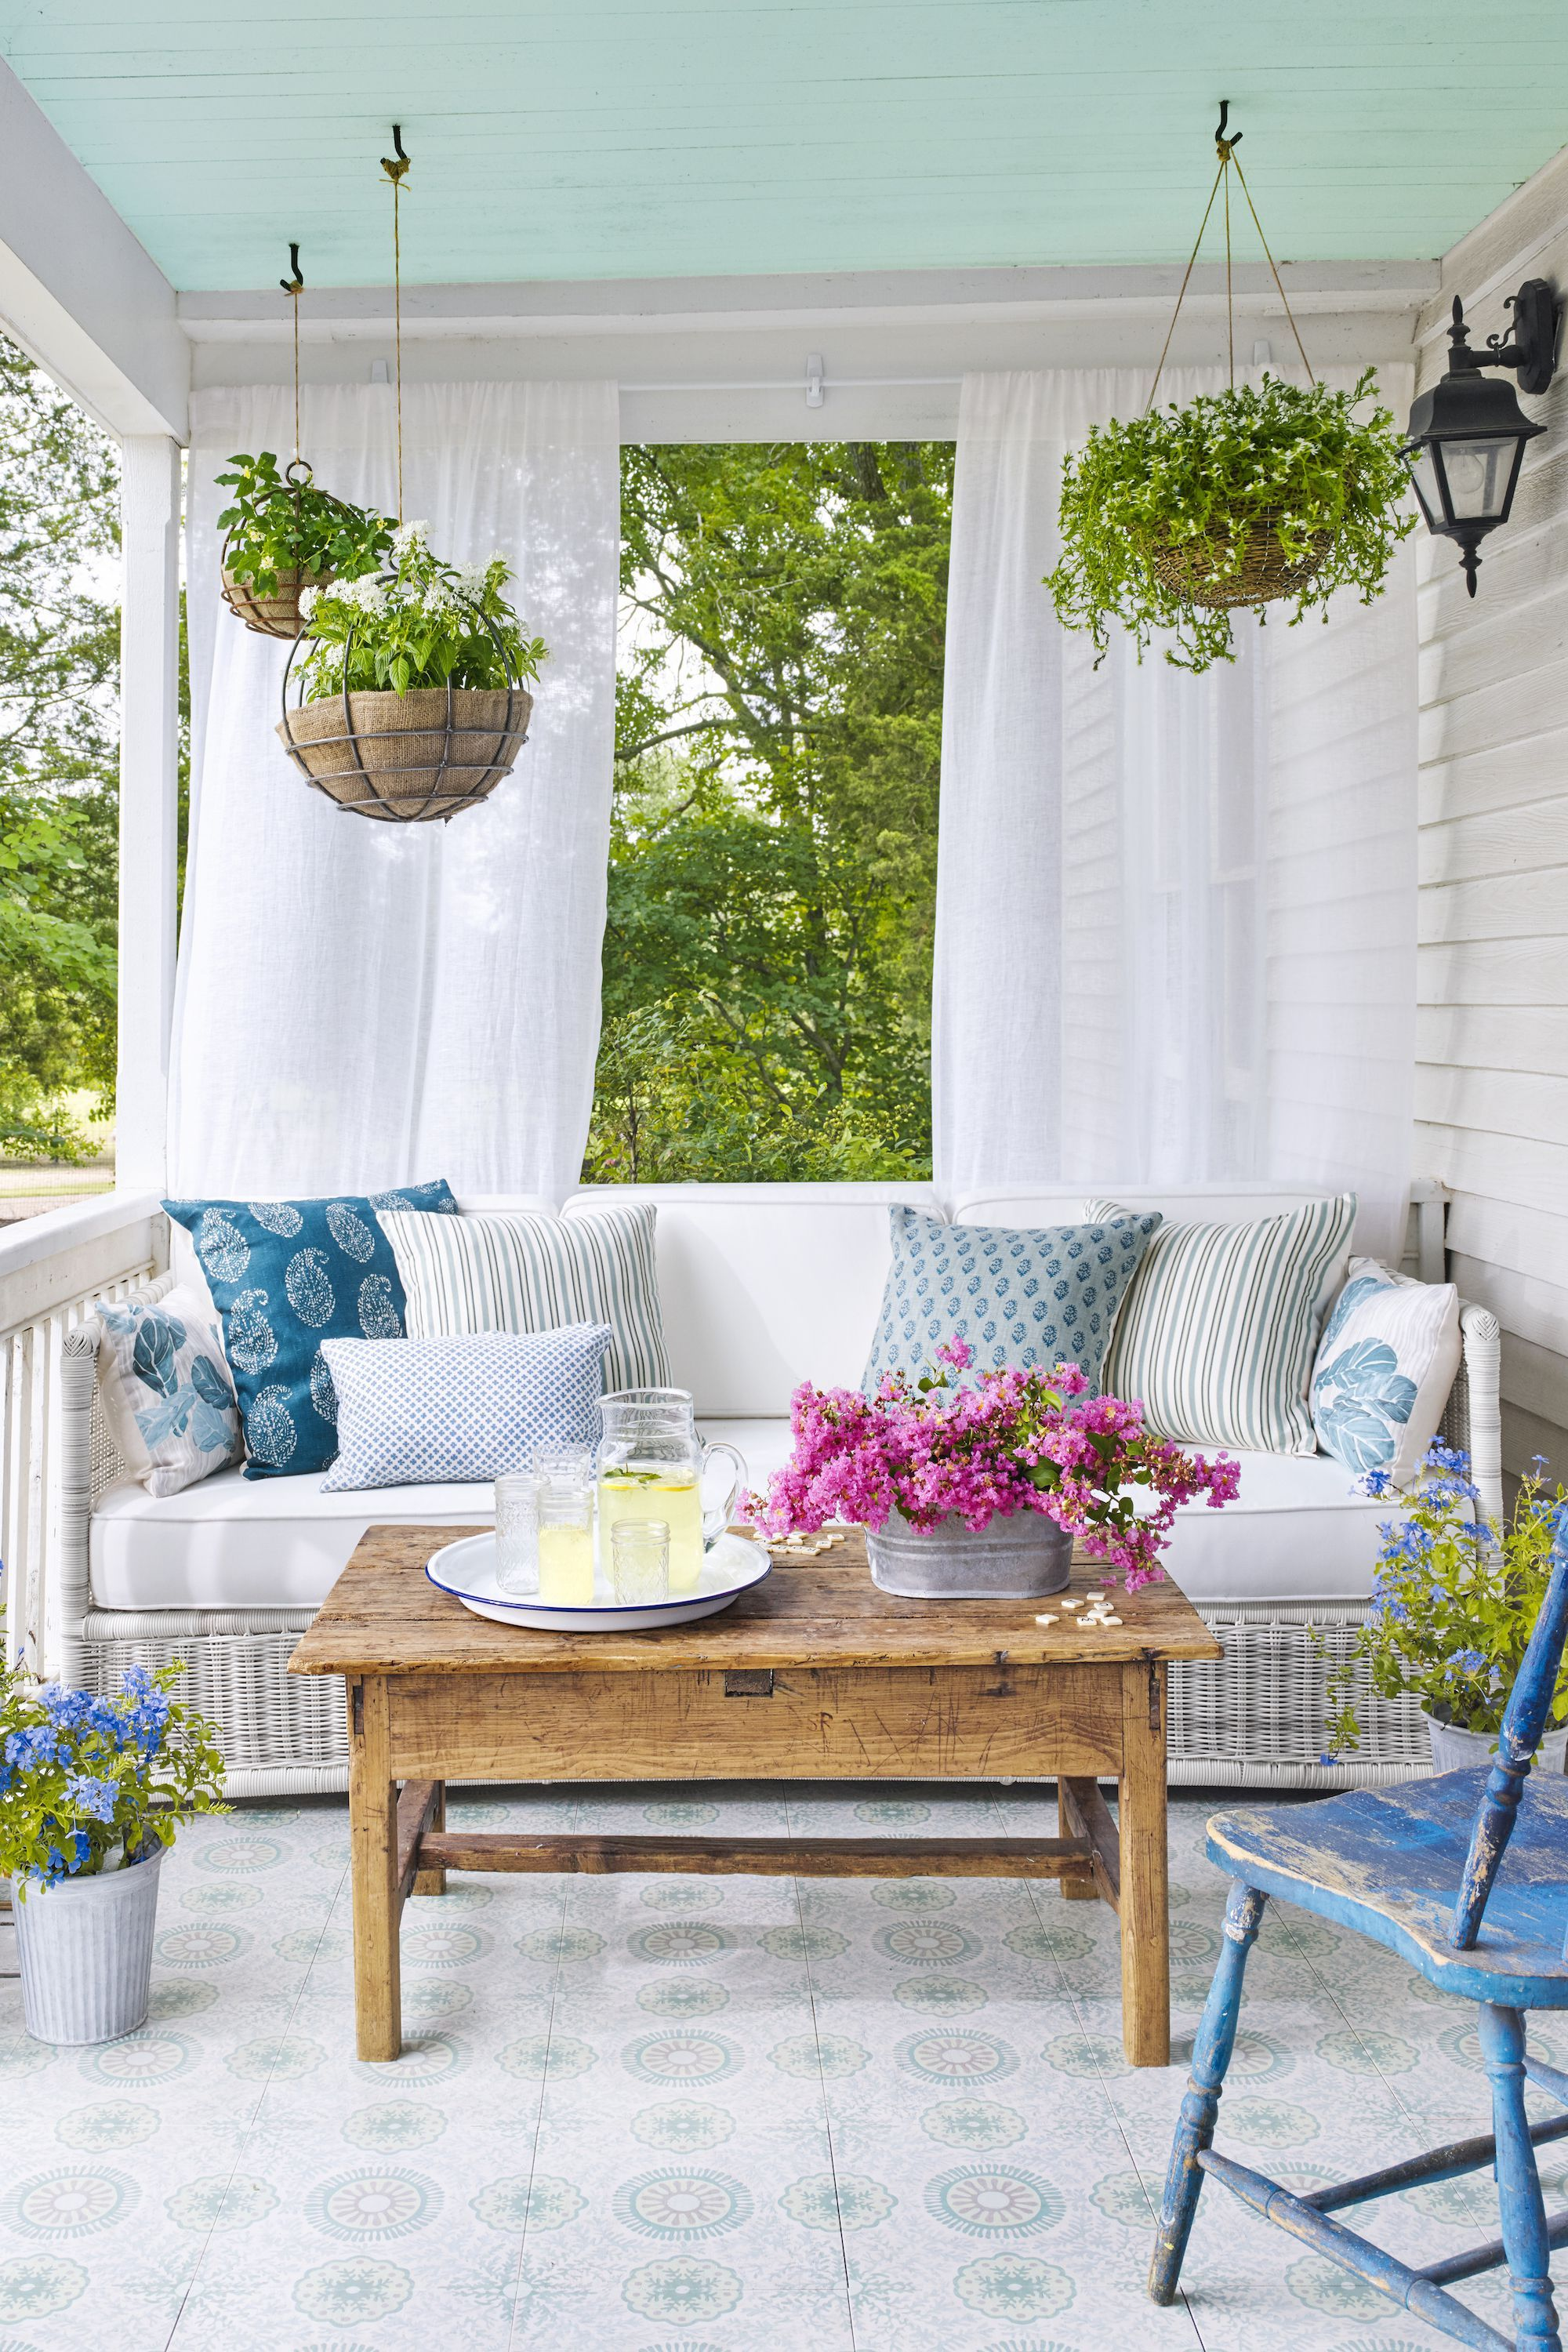 21 Front Porch Ideas - Designs and Decorating Ideas for Your Front